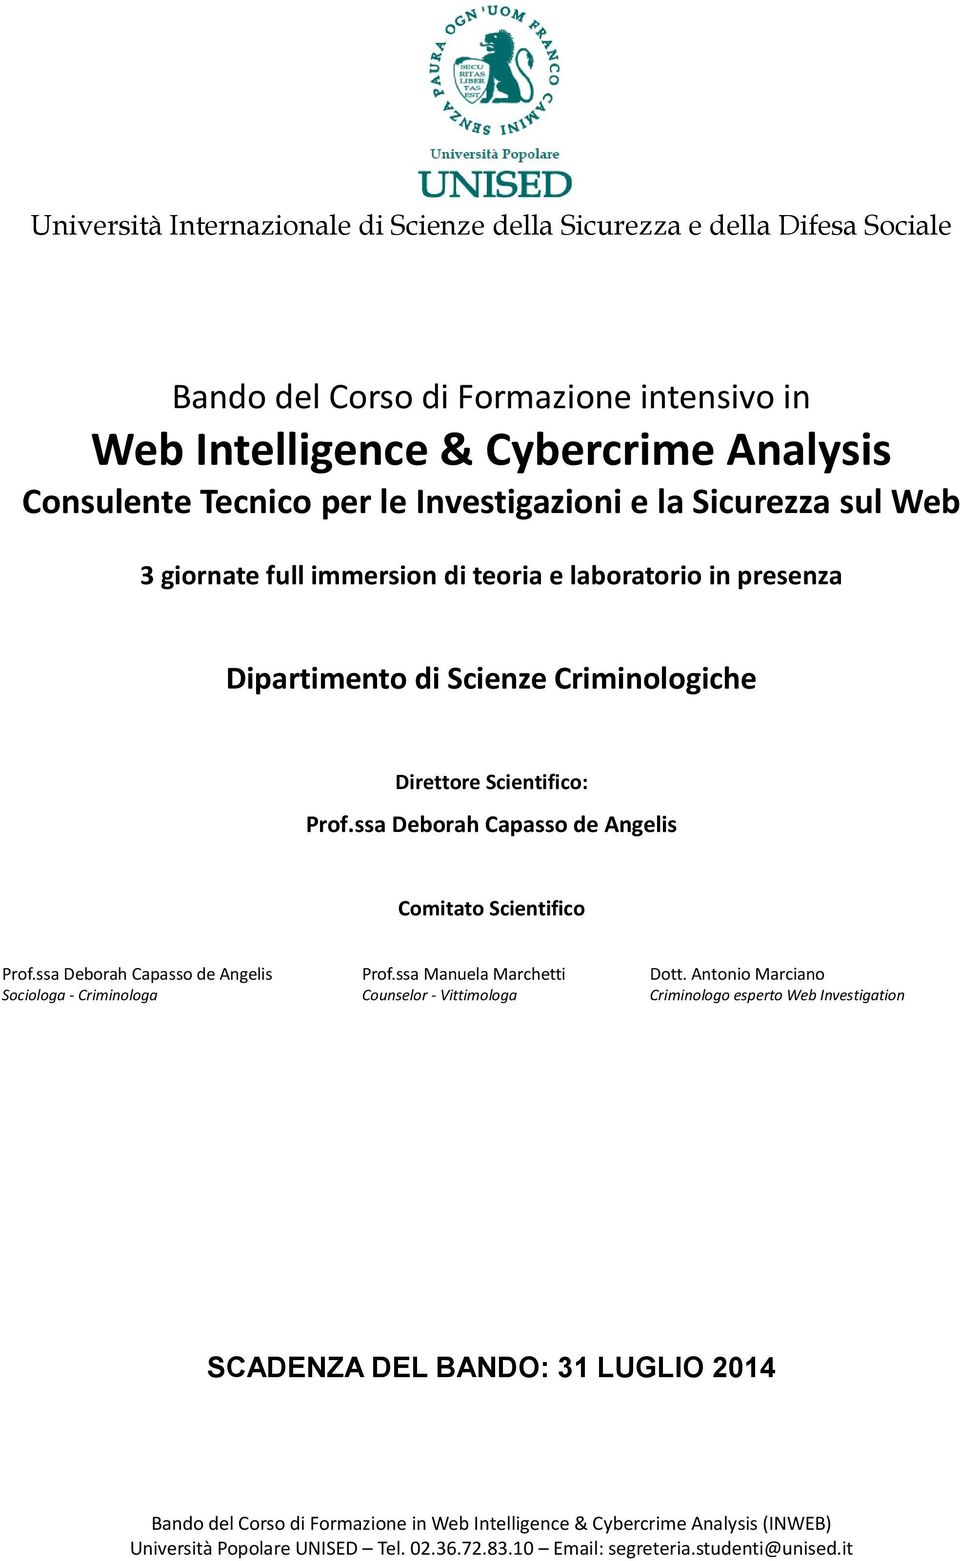 Scienze Criminologiche Direttore Scientifico: Prof.ssa Deborah Capasso de Angelis Comitato Scientifico Prof.ssa Deborah Capasso de Angelis Prof.